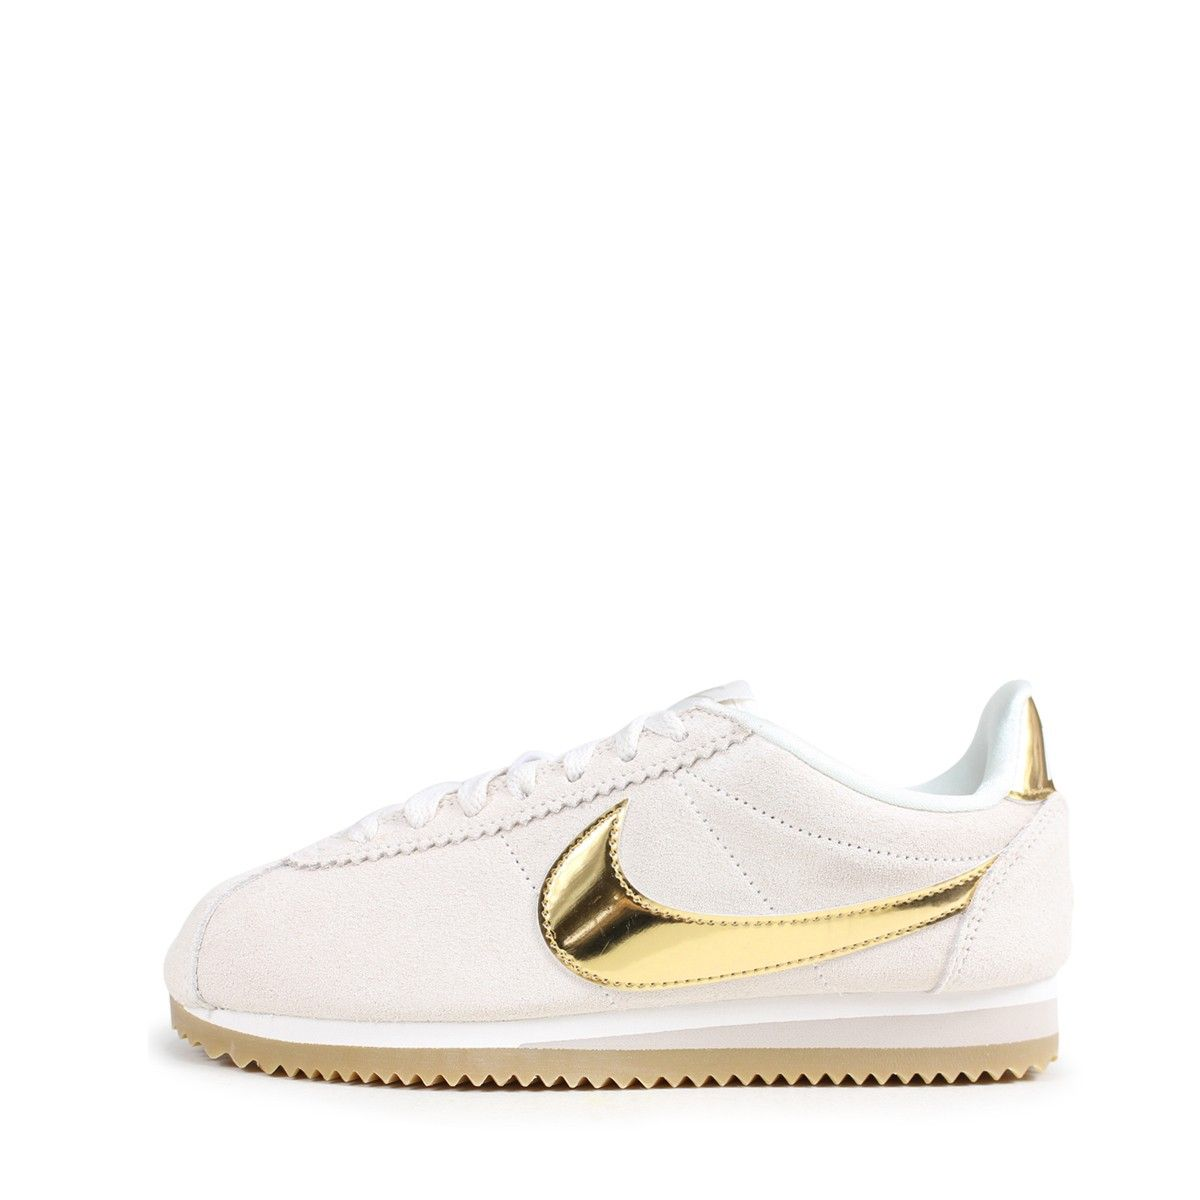 hot sale online cd4aa ce36f Baskets Nike W CORTEZ CLASSIC LEATHER - Ref. 902856-013. Loading zoom